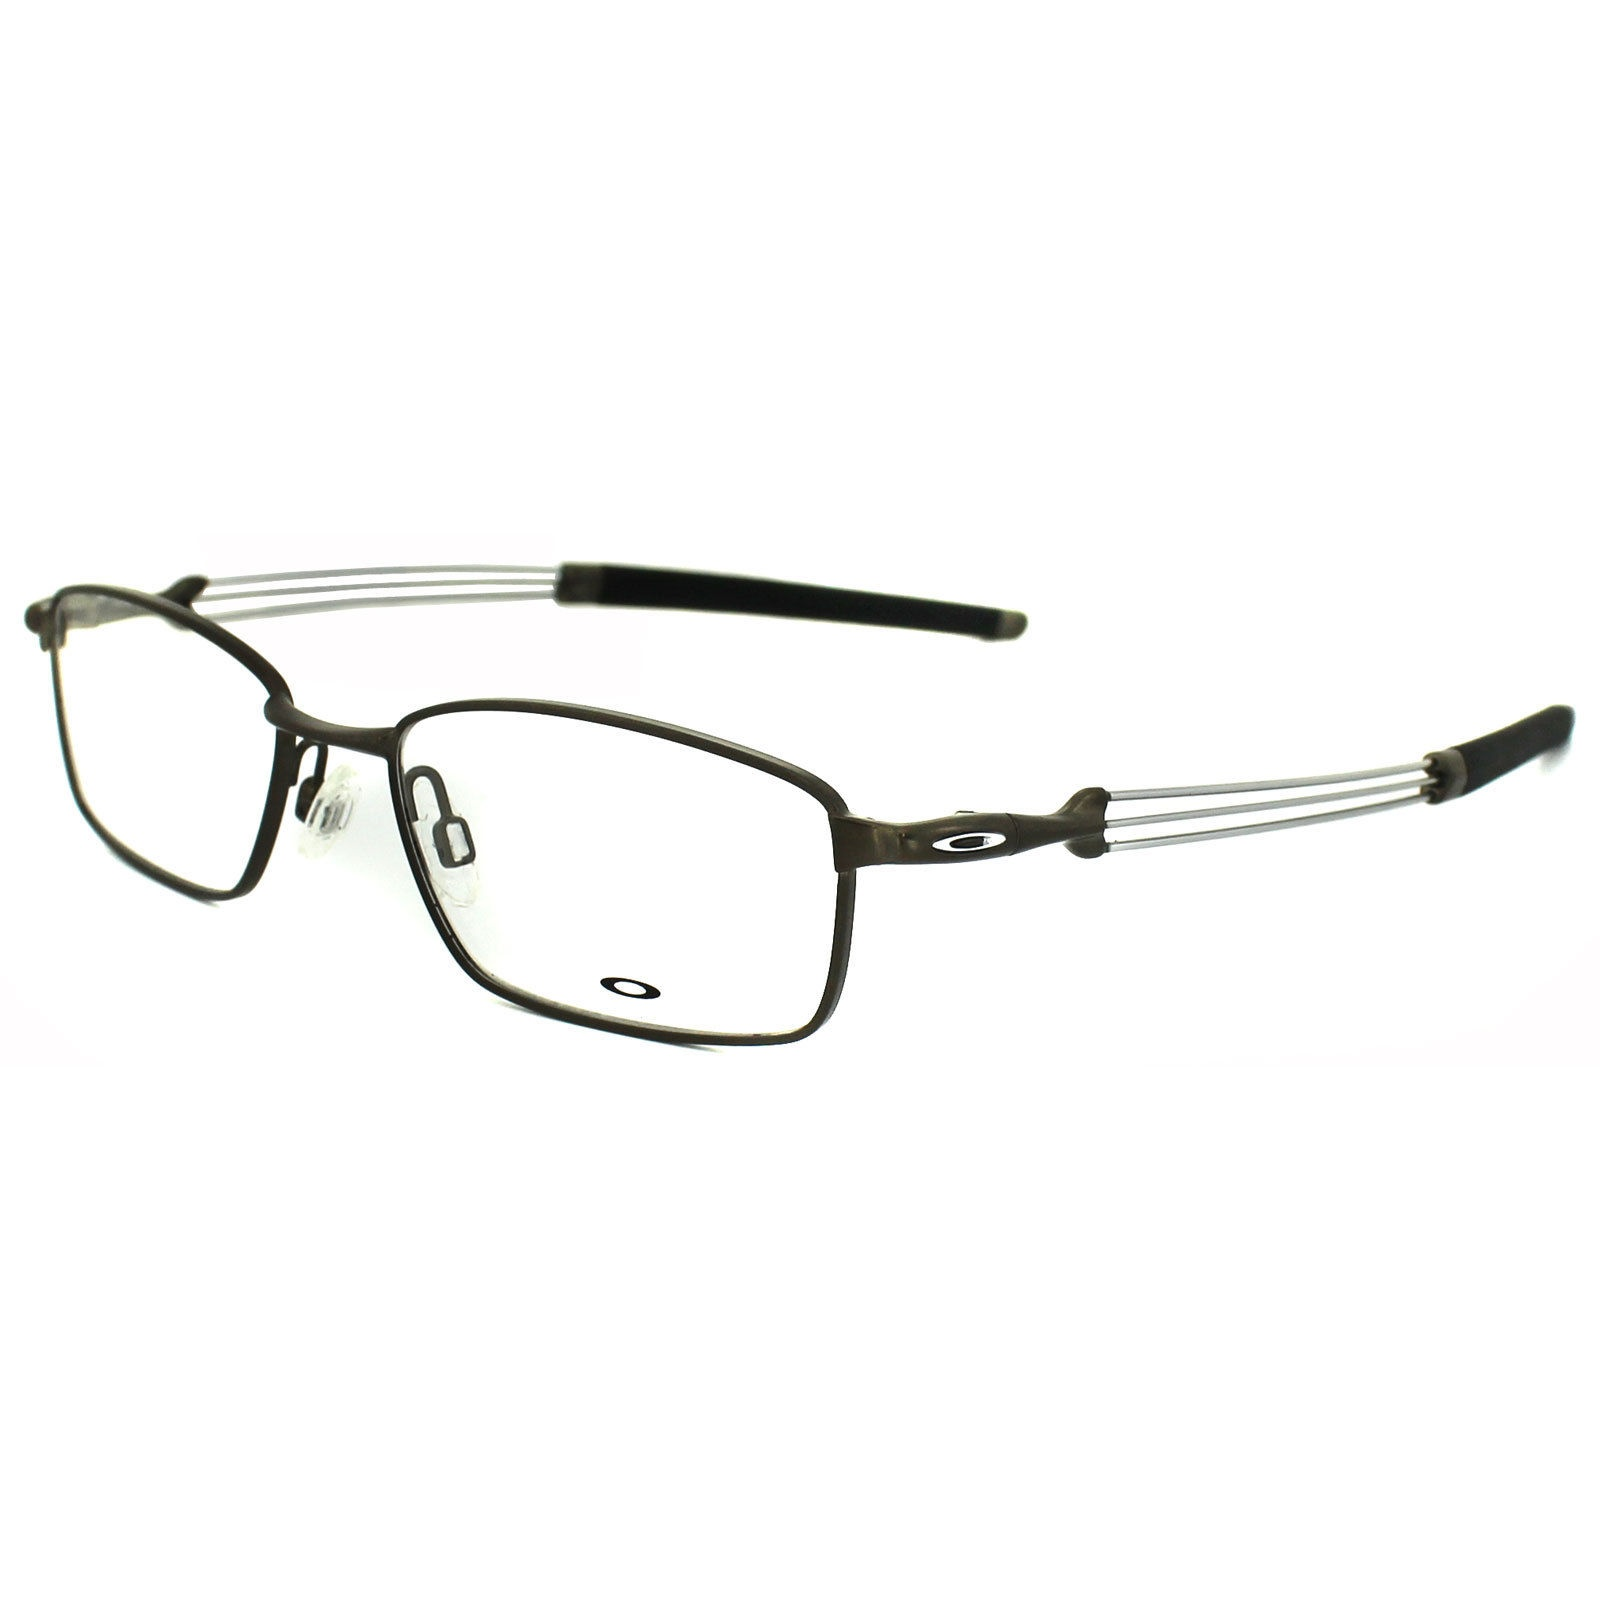 7fbaa800fb Oakley Rx Glasses Prescription Frames Coilover 5043-03 Pewter by Oakley -  Shop Online for Health in the United States